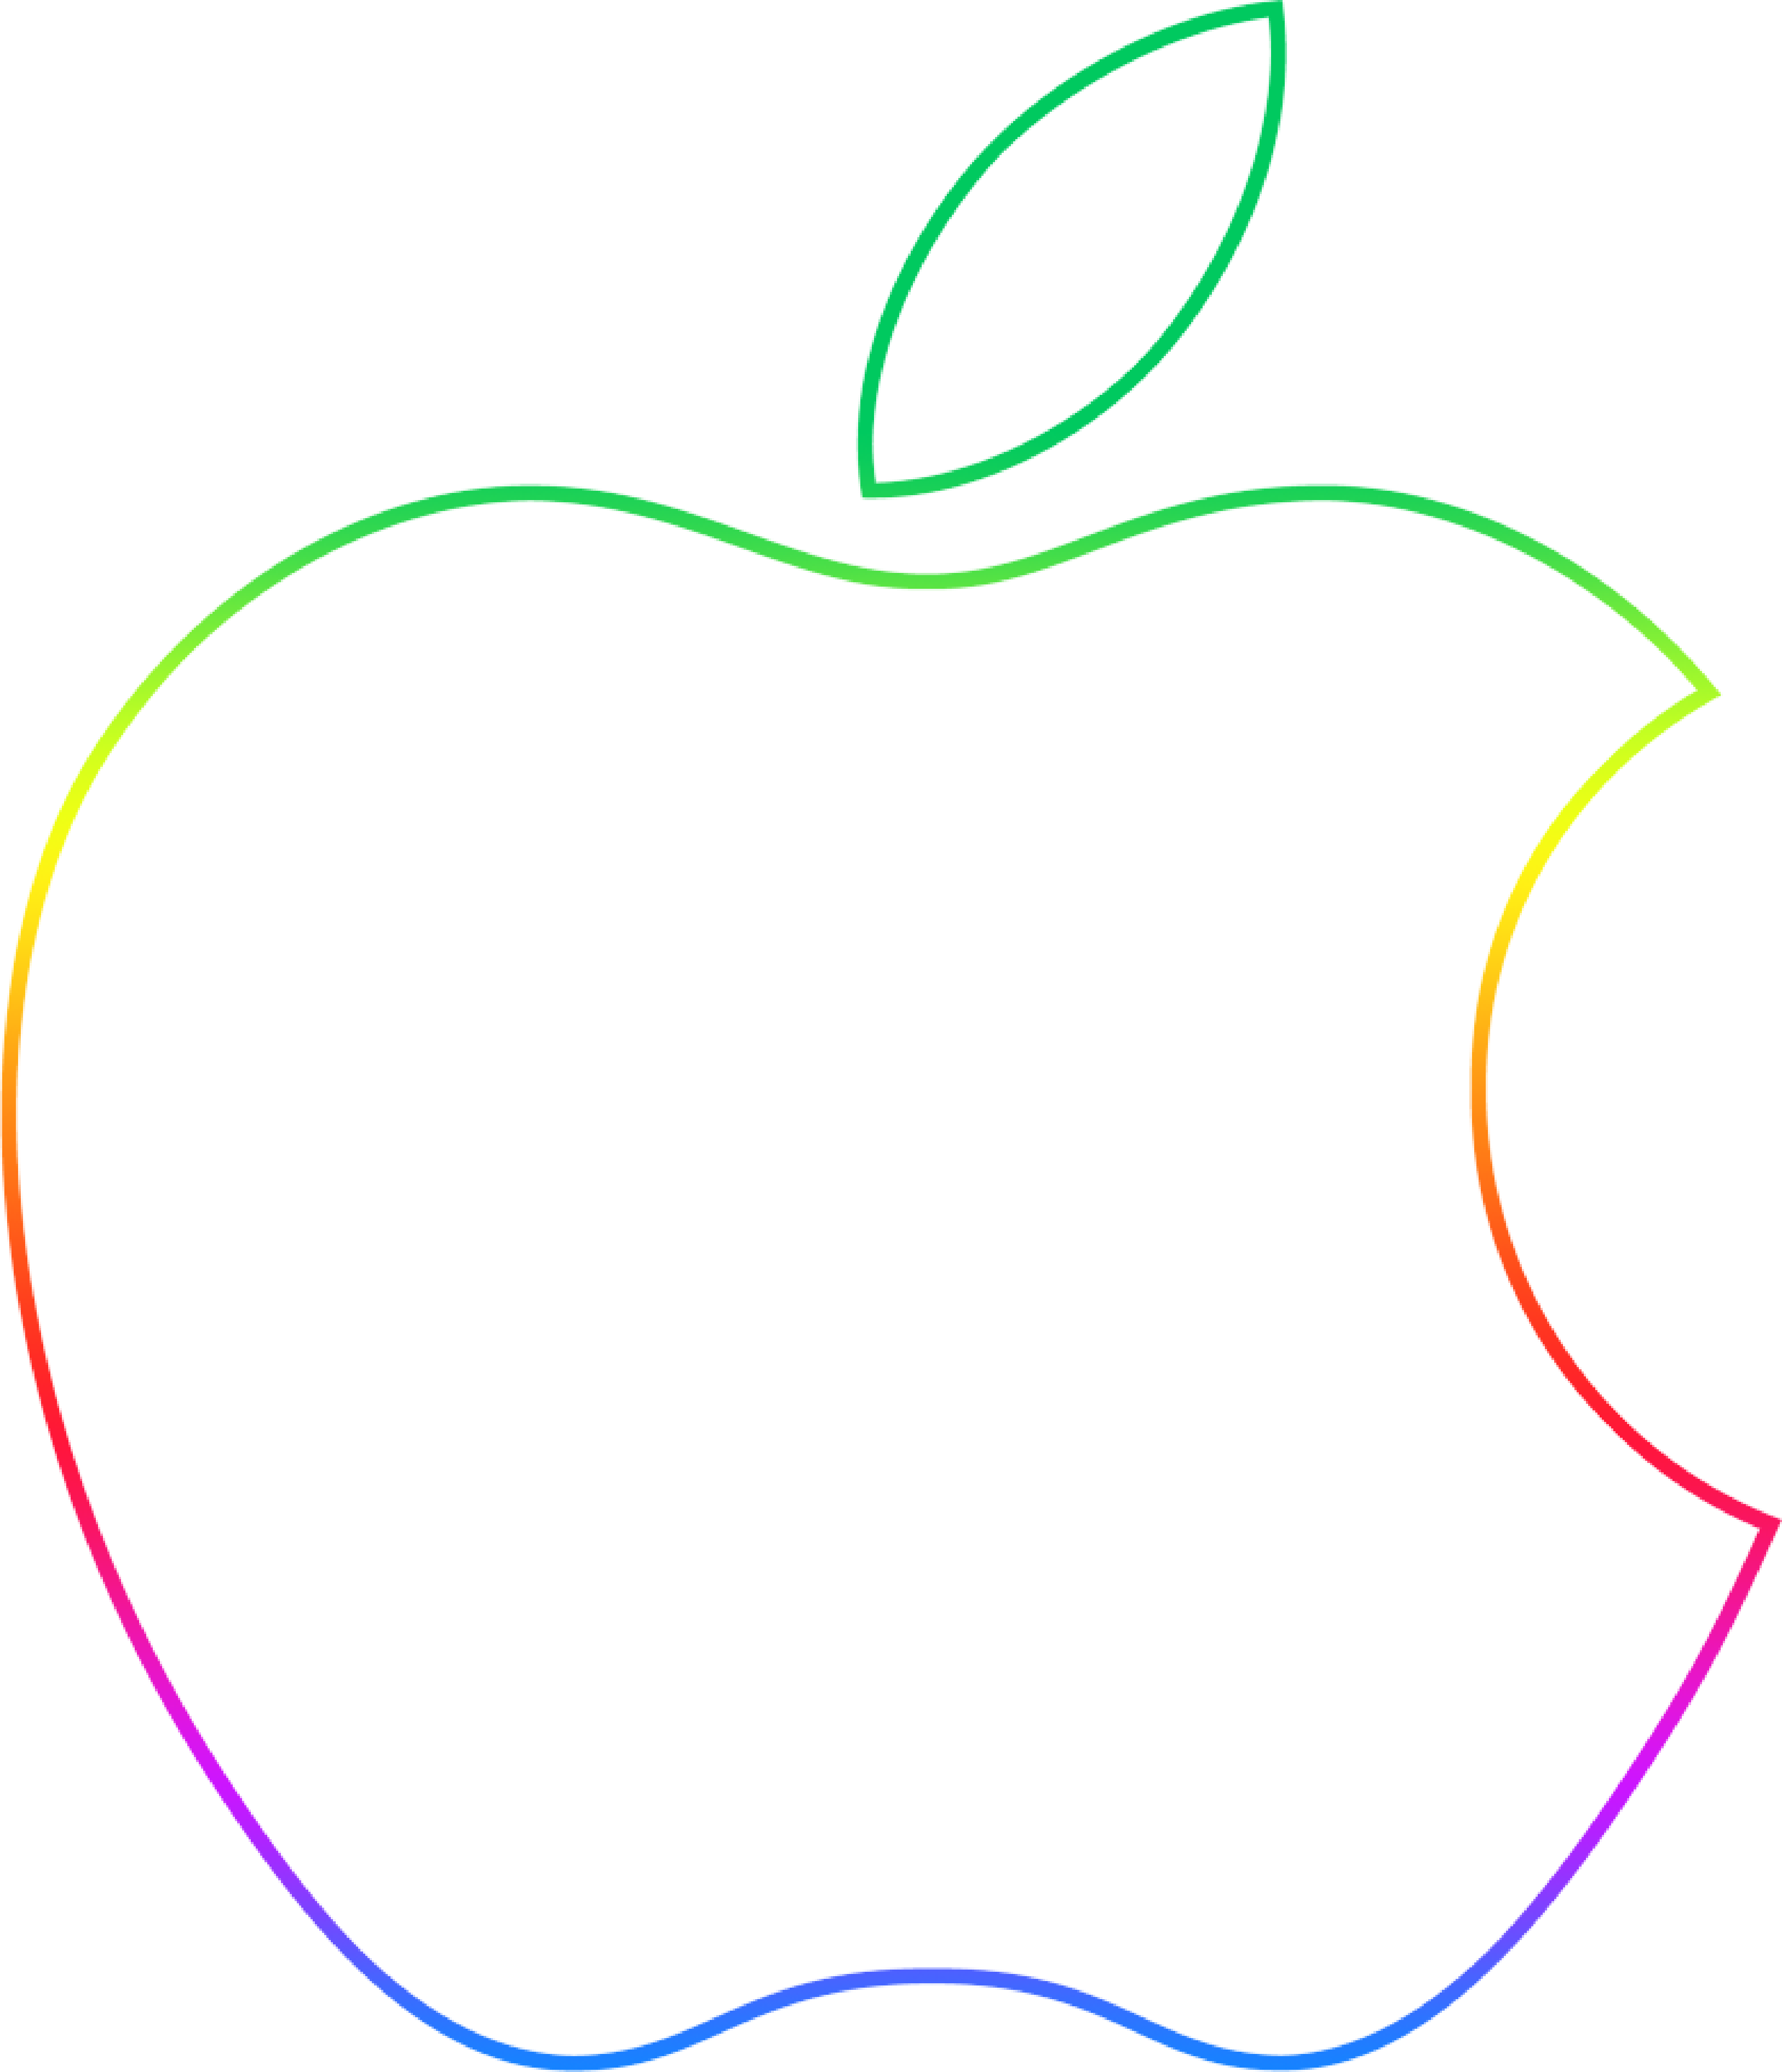 Product Angle Apple Point Logo Line PNG Image